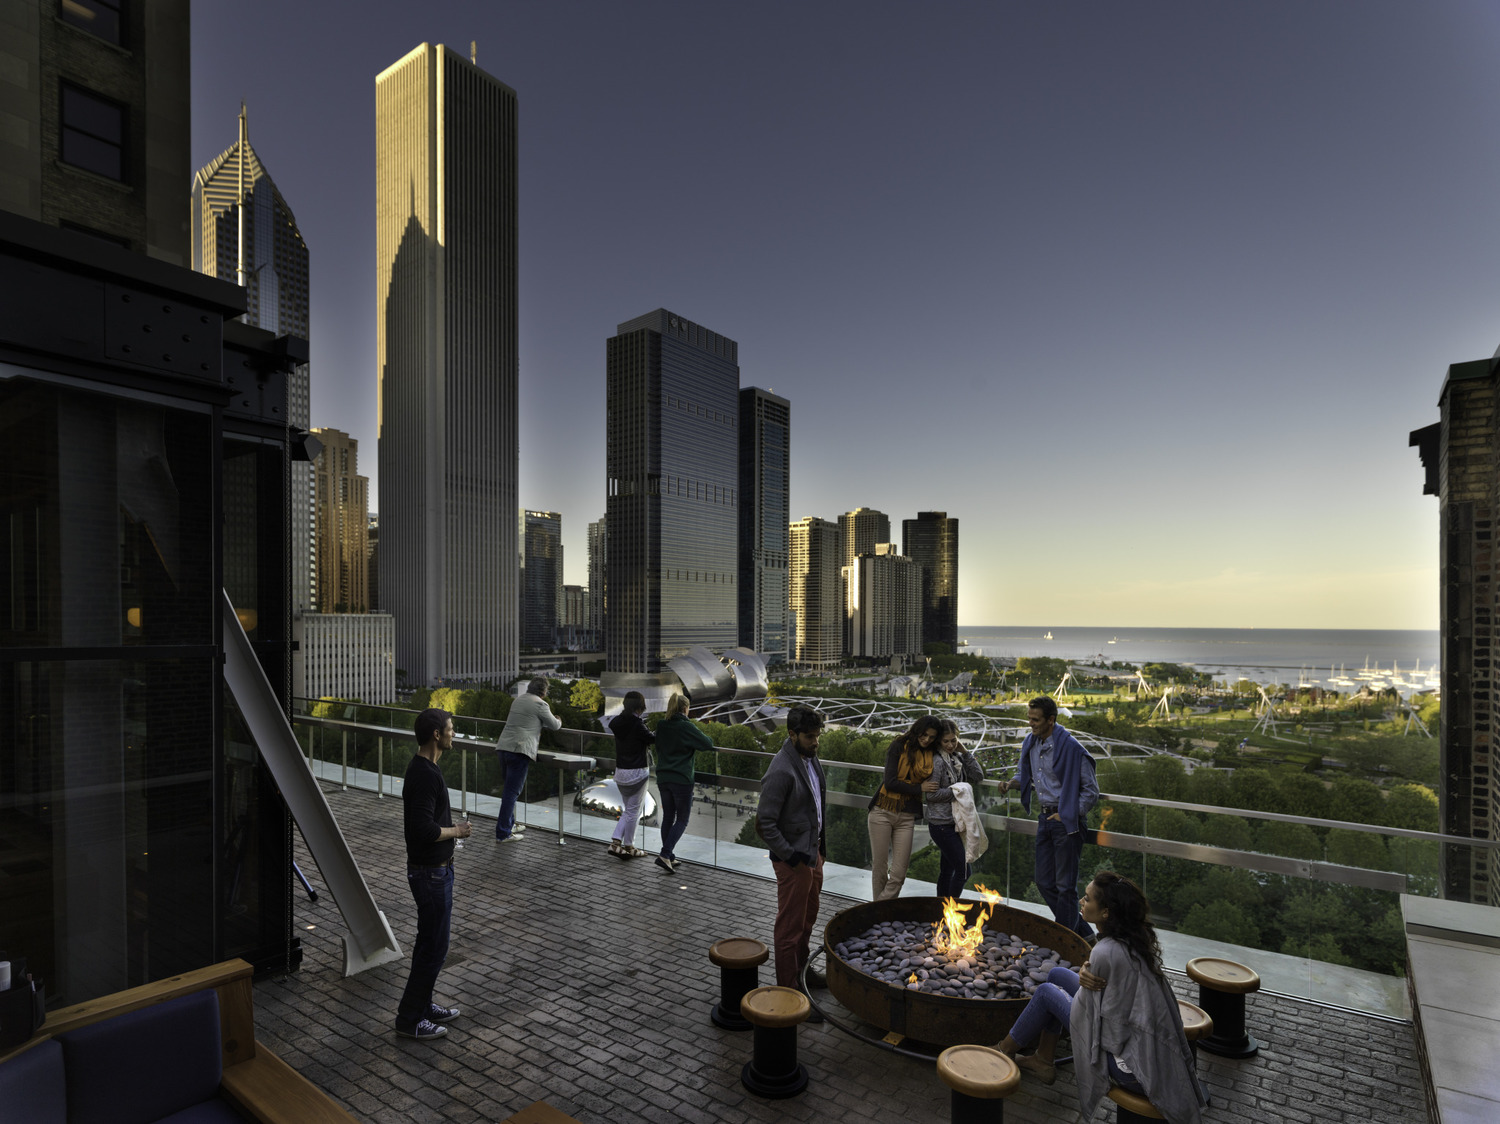 Cindy's Rooftop Bar & Terrace at The Chicago Athletic Association in Chicago offers spectacular views of Millennium Park and Lake Michigan. The Large Drum Fire-pits certainly don't hurt either.